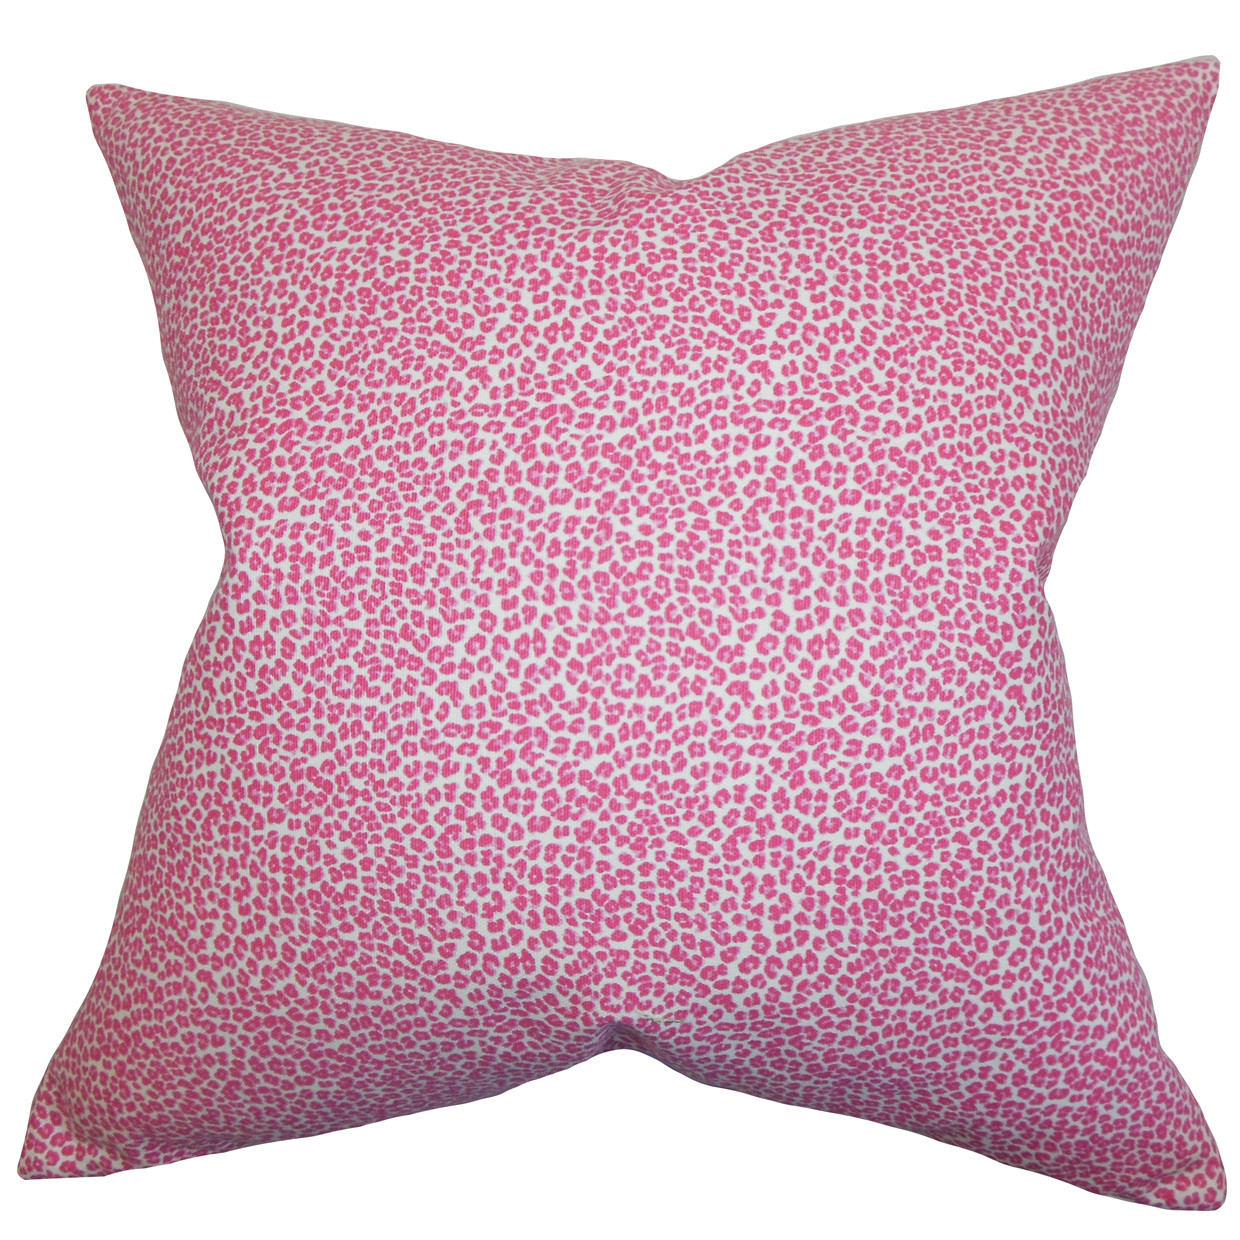 The Pillow Collection Pink Cheetah Animal Print Pillow